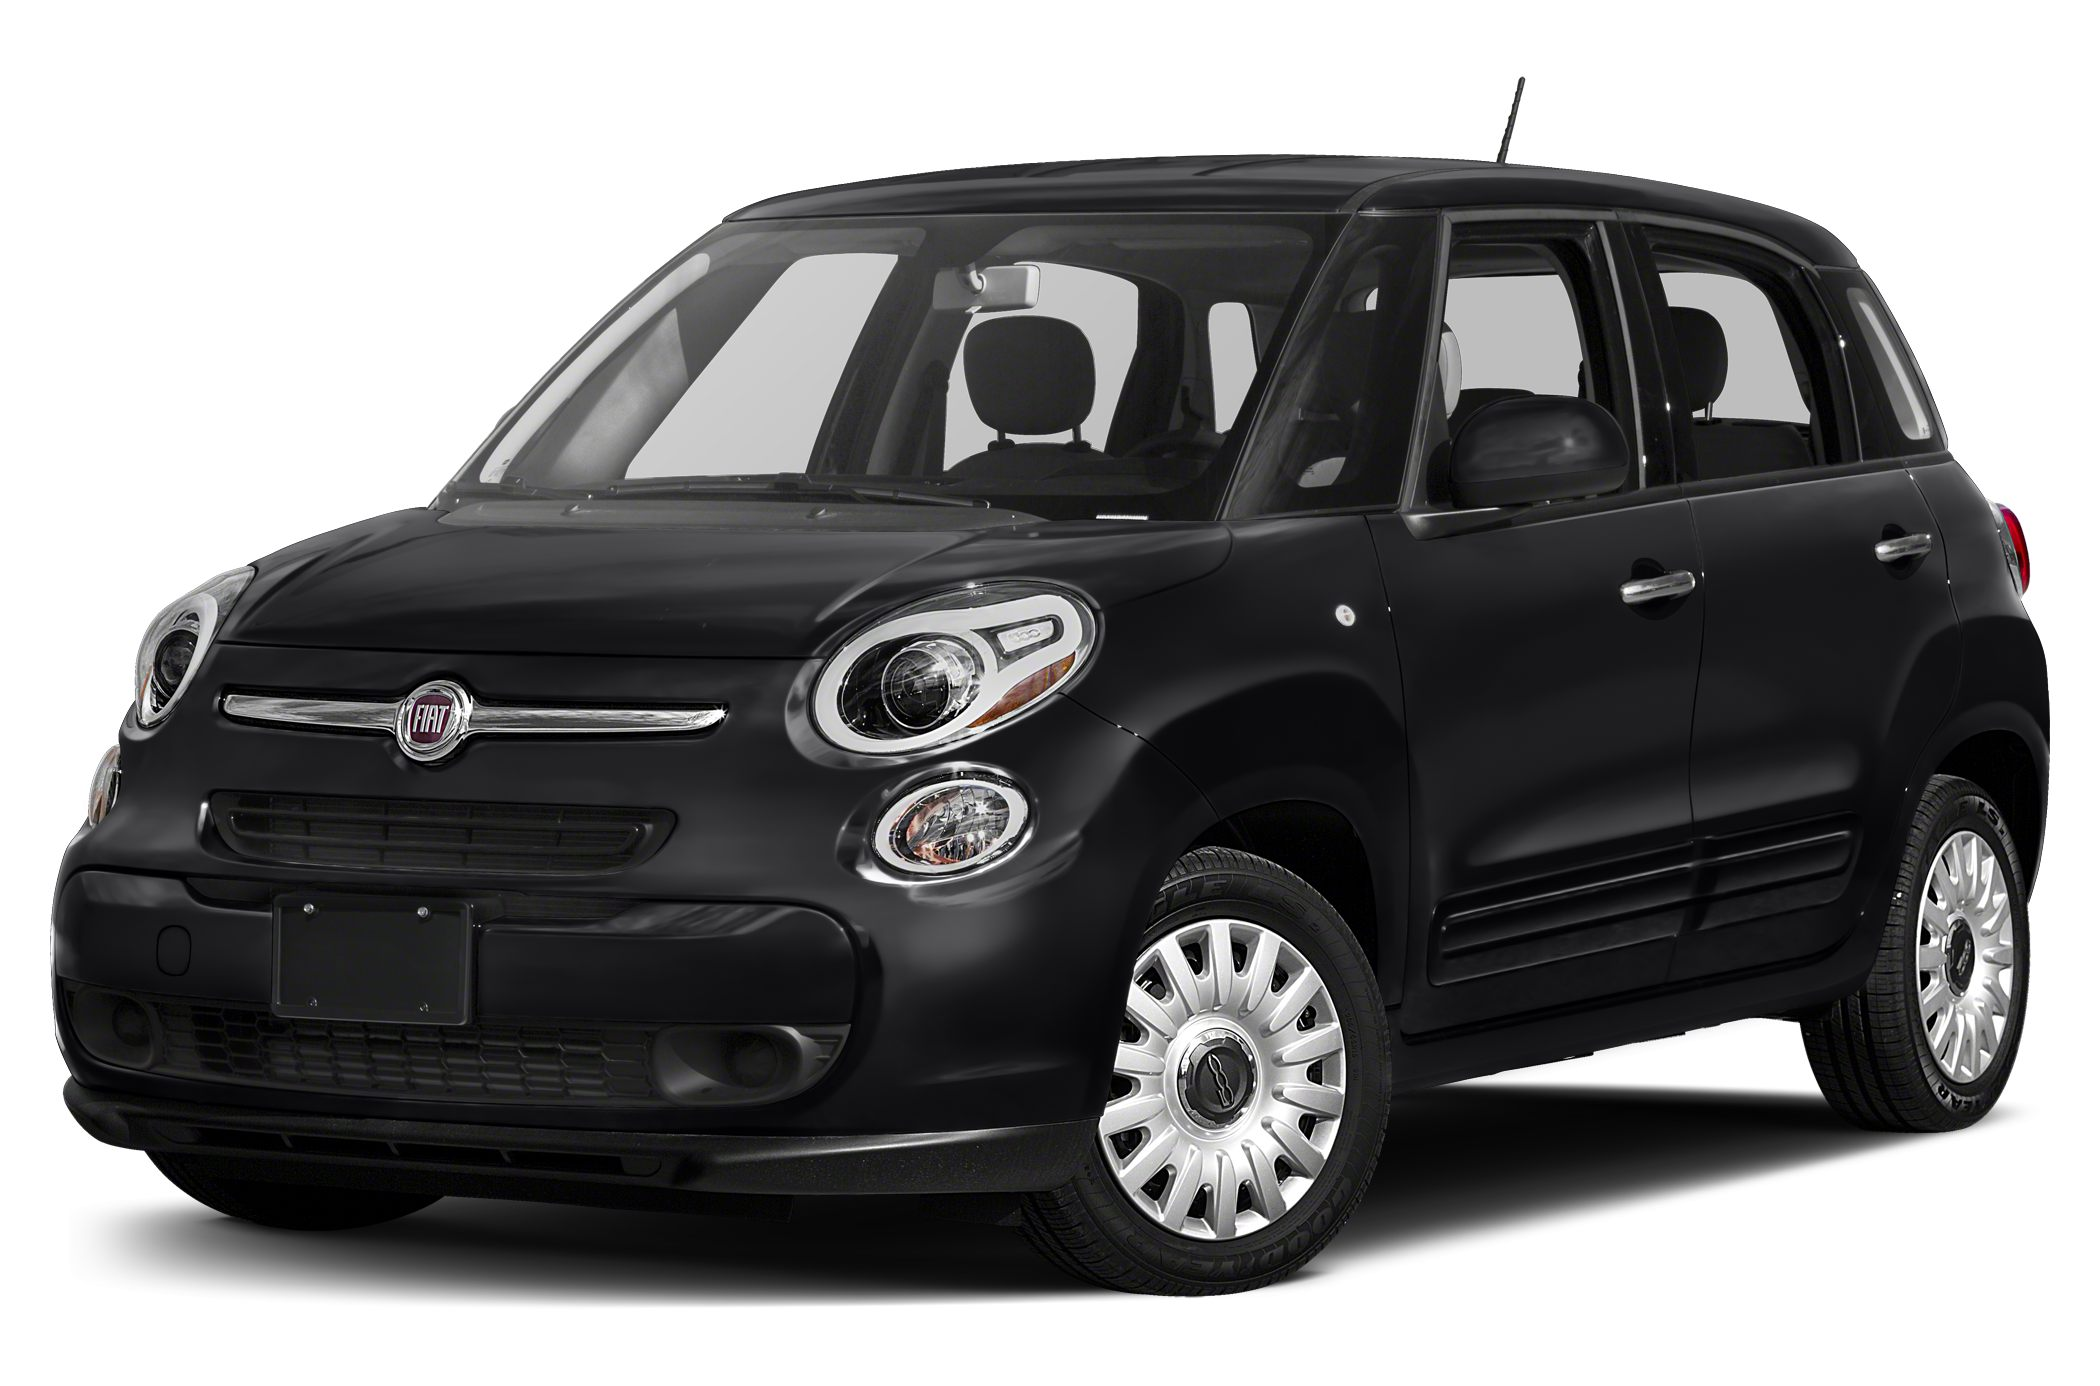 fiat 500l news photos and buying information autoblog. Black Bedroom Furniture Sets. Home Design Ideas